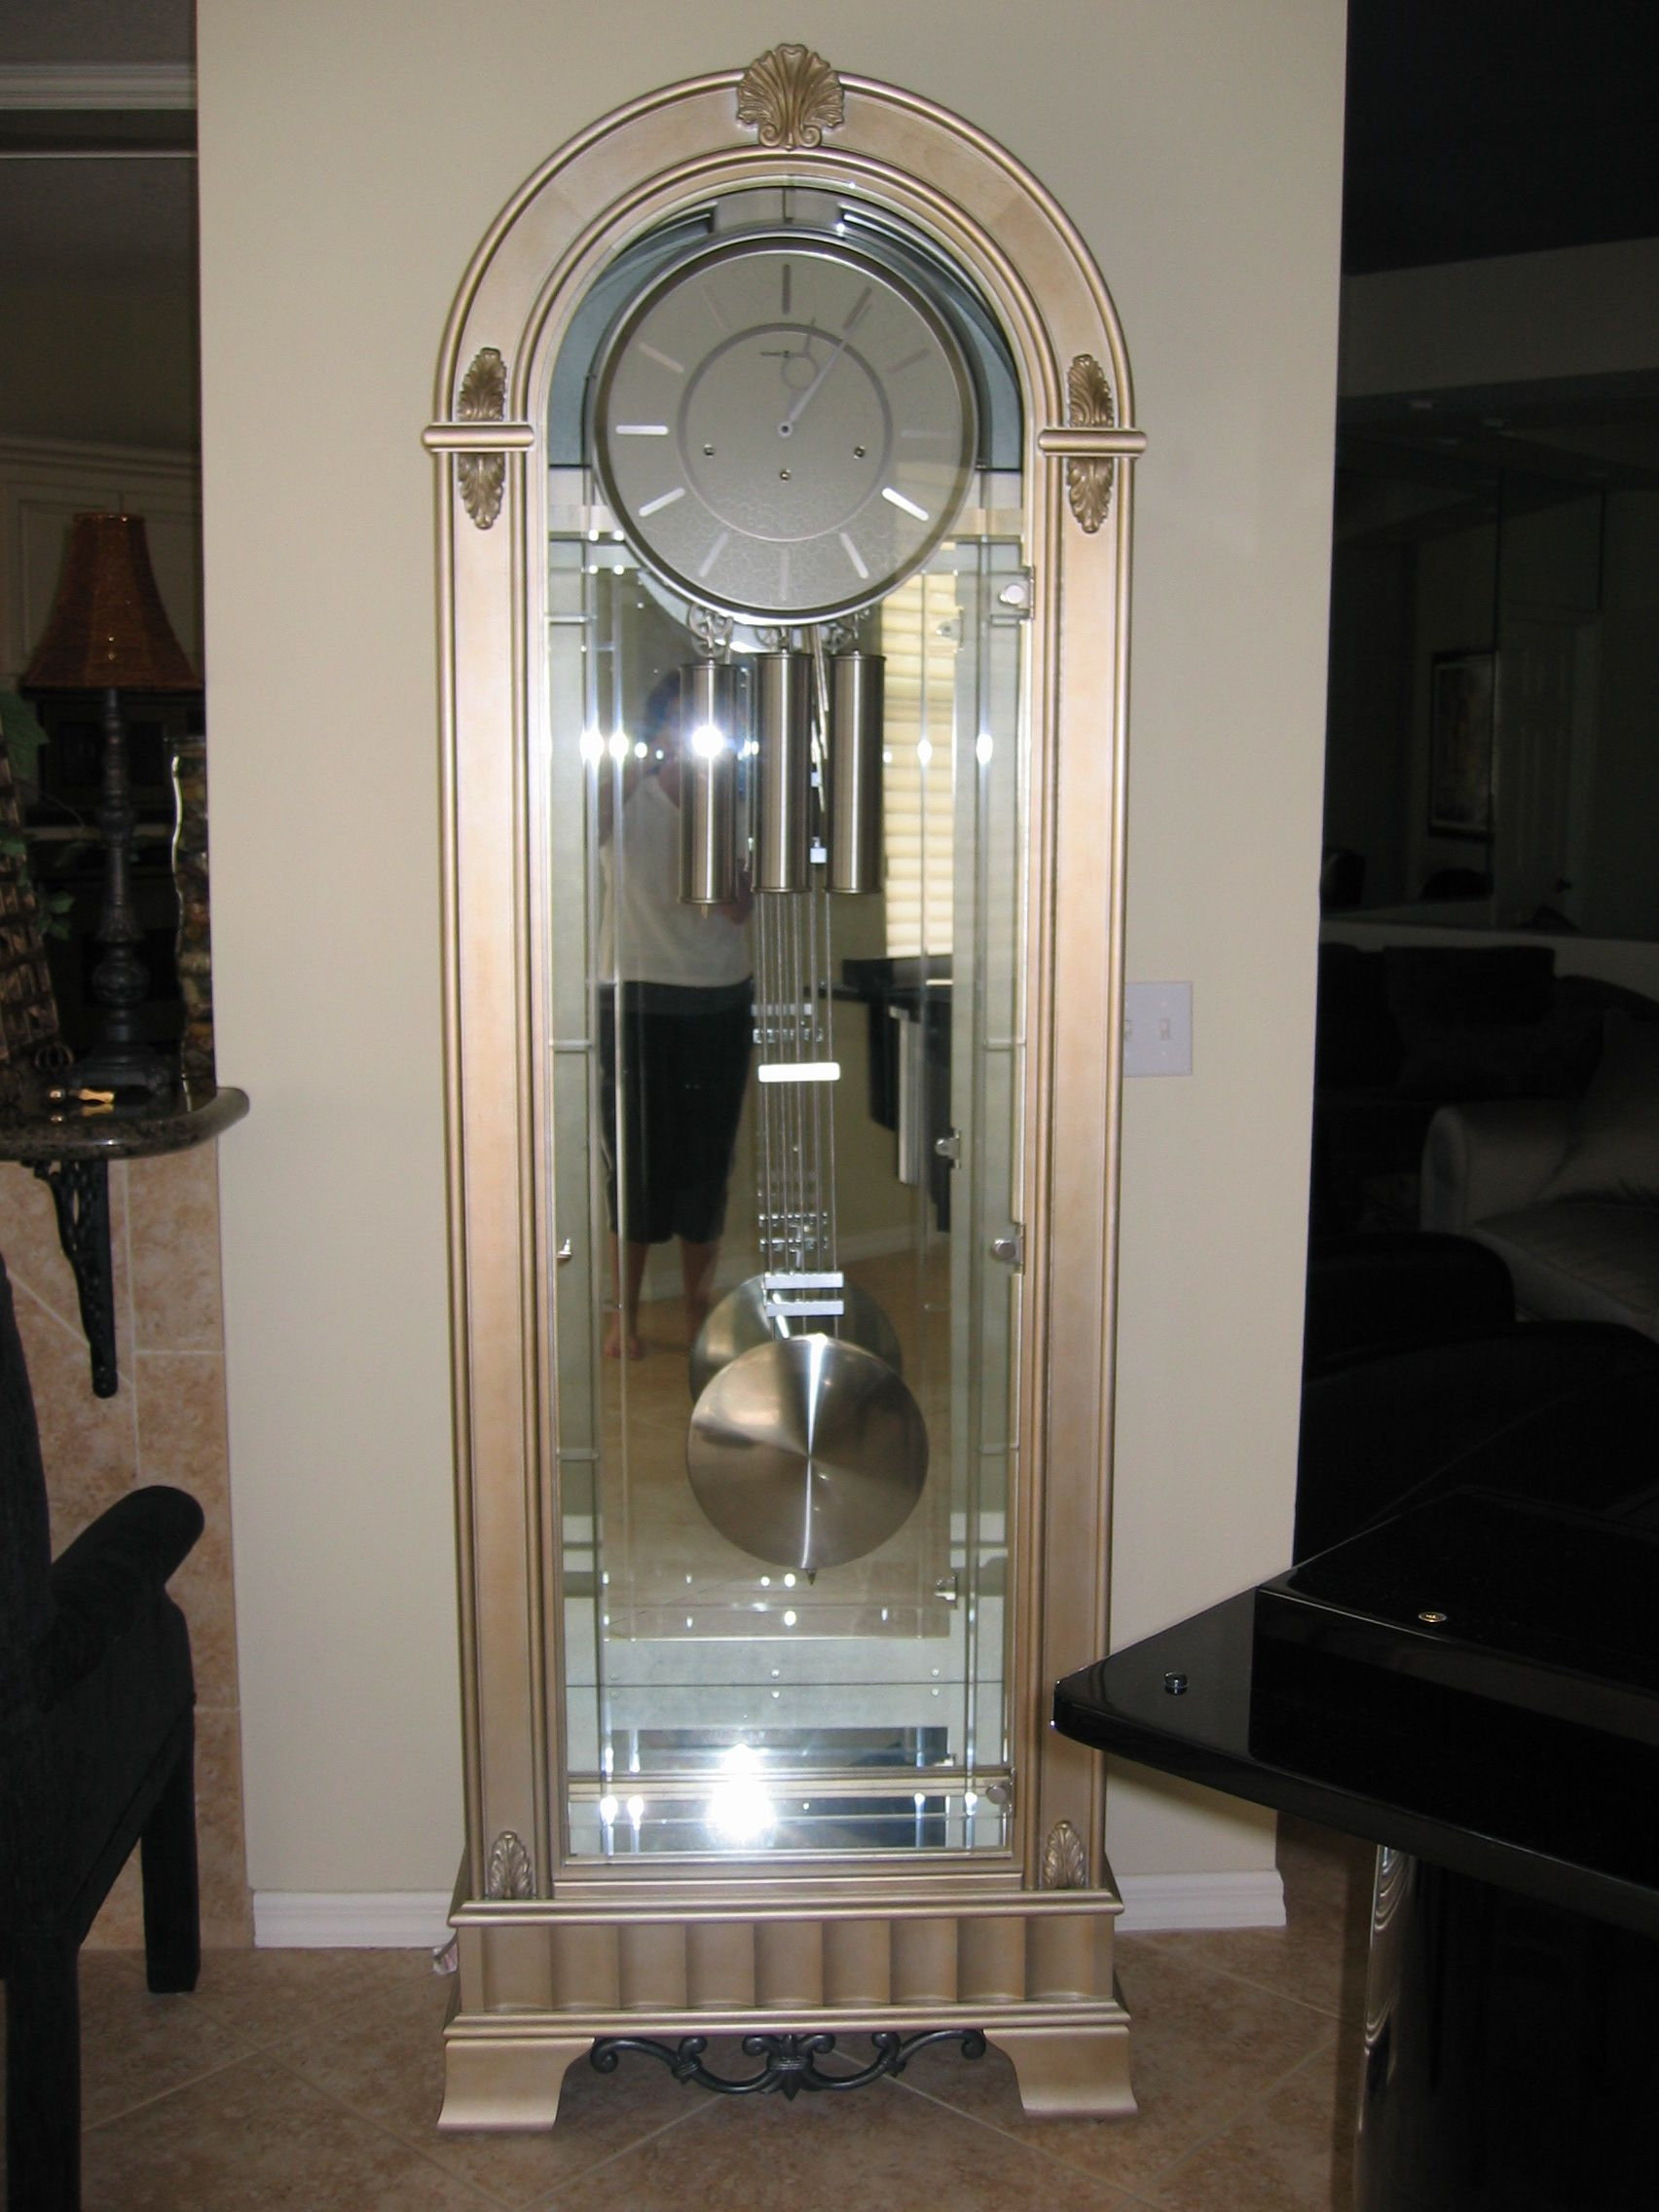 Howard Miller Coastal Point Grandfather Clock. So thrilled